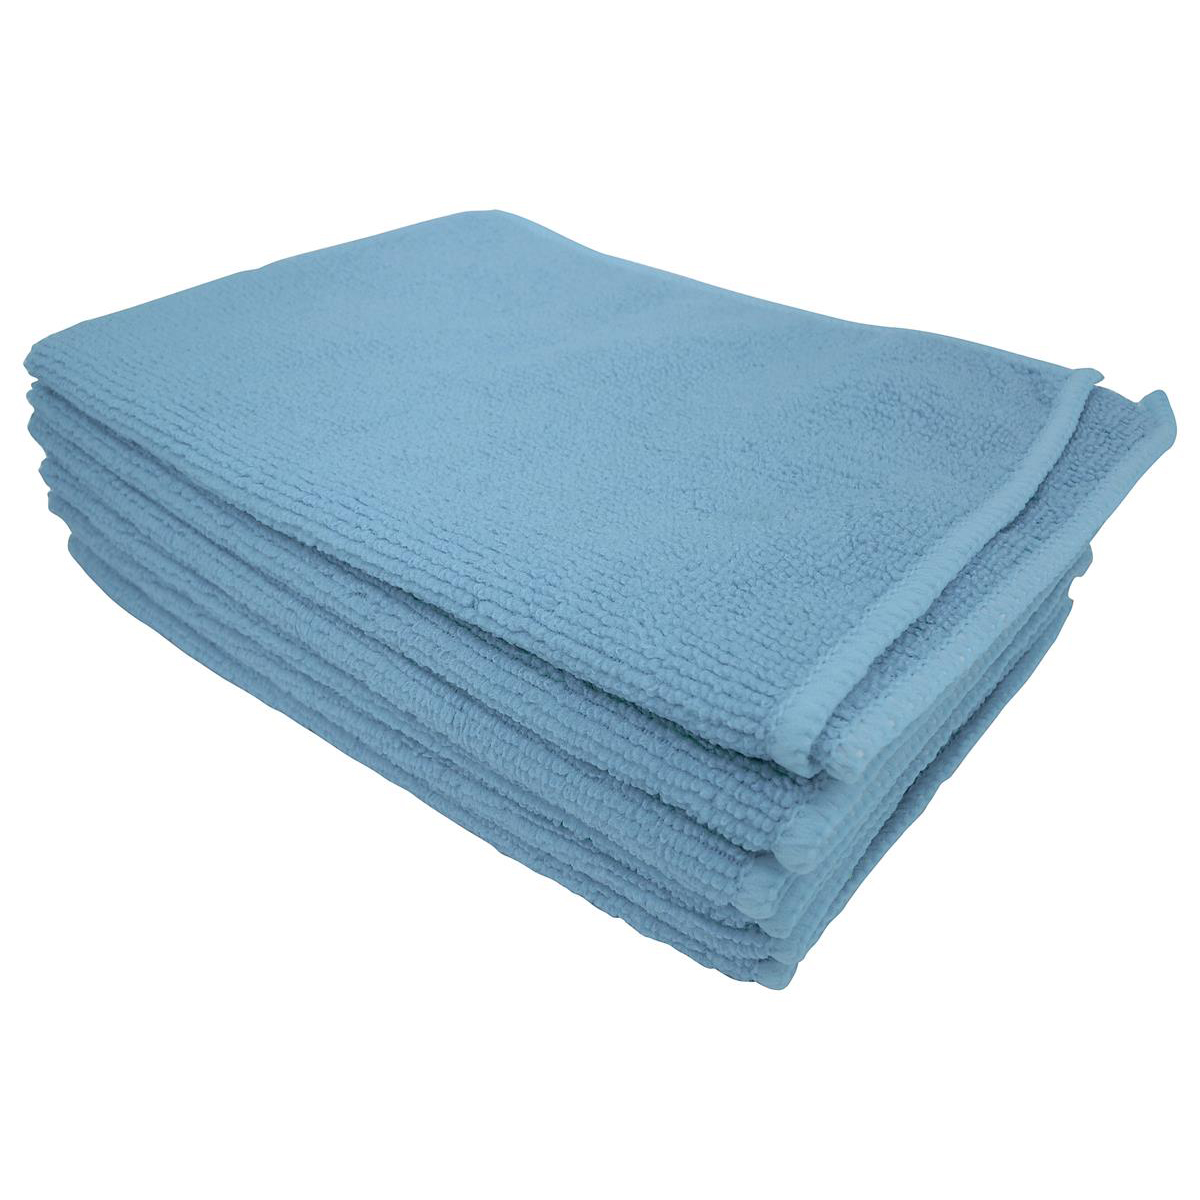 5 Star Facilities Microfibre Cleaning Cloths Colour-coded for Dry or Damp Multi-surface Use Blue Pack 6